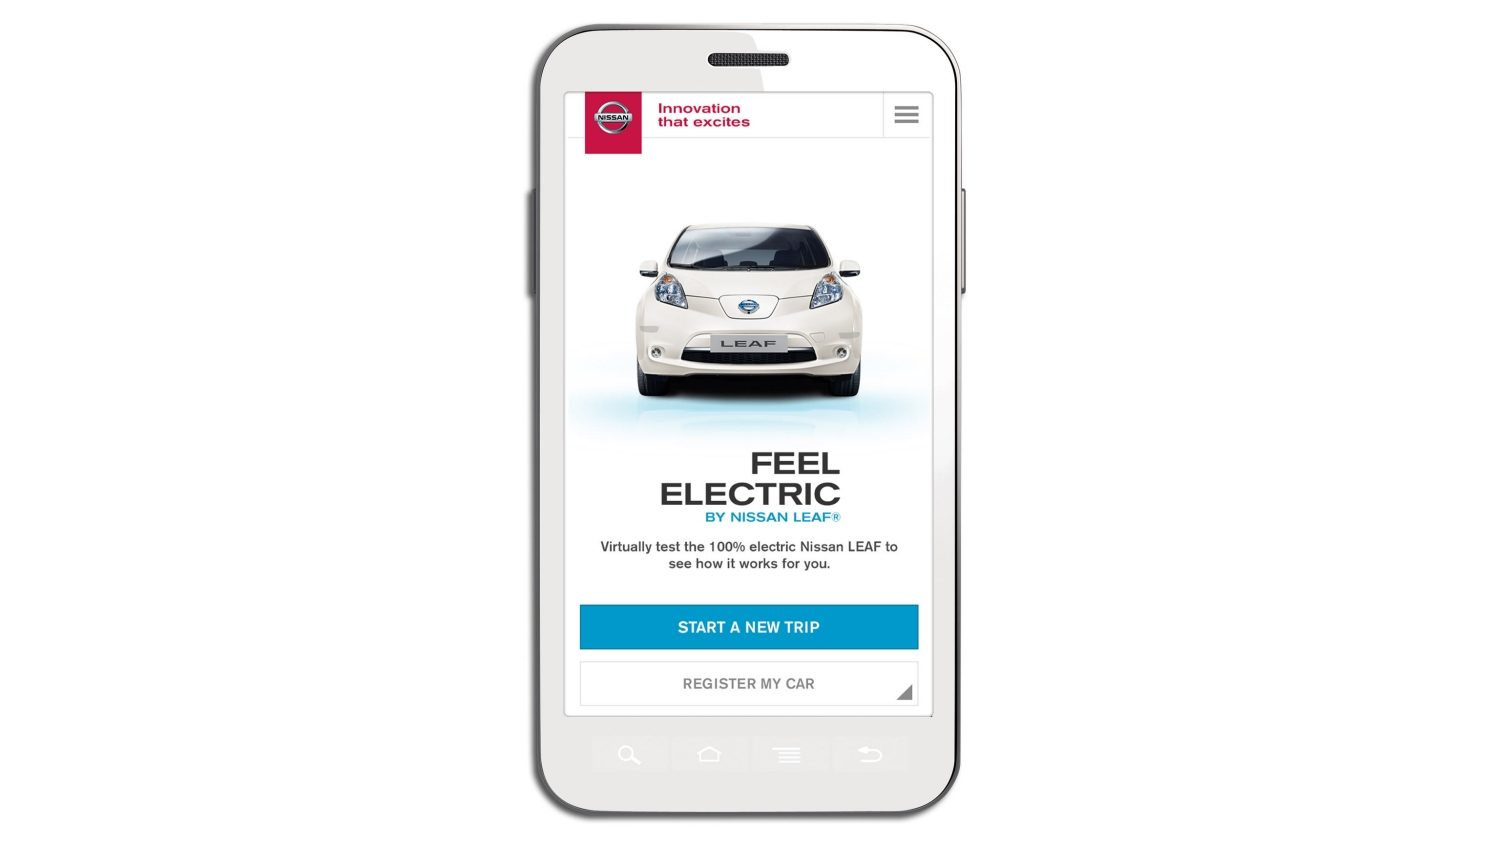 Nissan LEAF | Feel Electric app